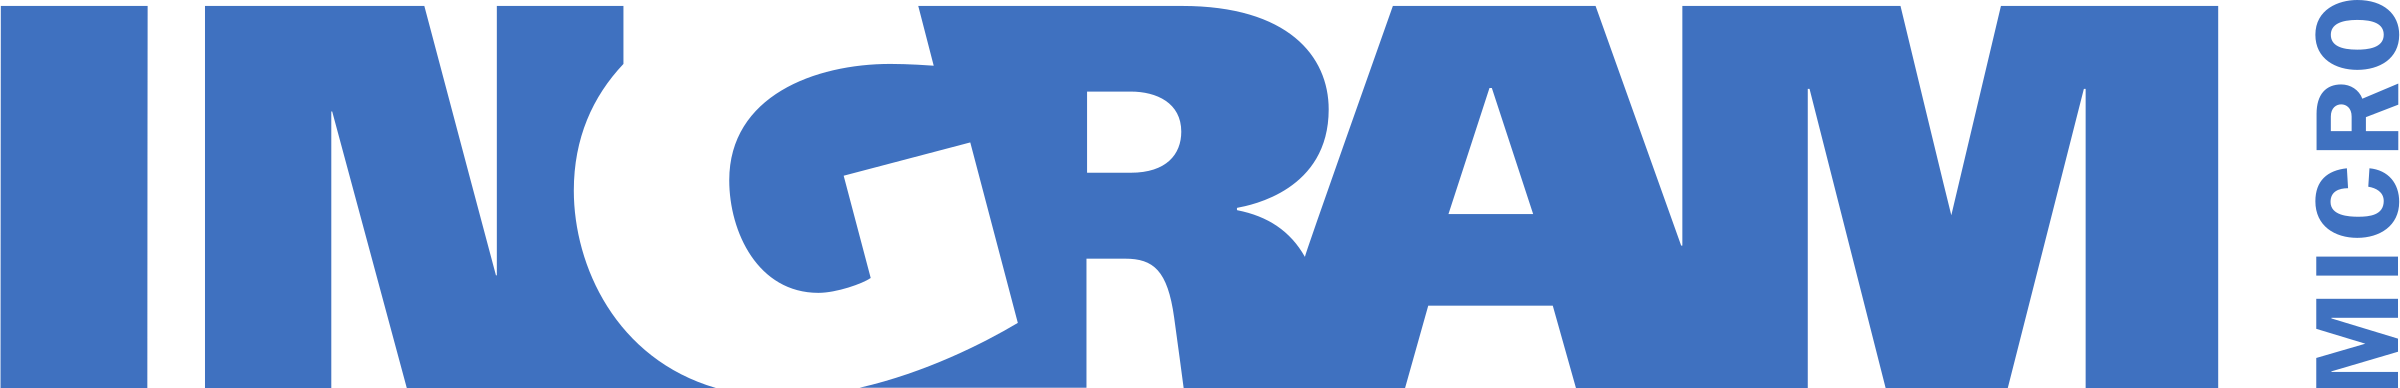 ingram-micro-1-logo-png-transparent.png